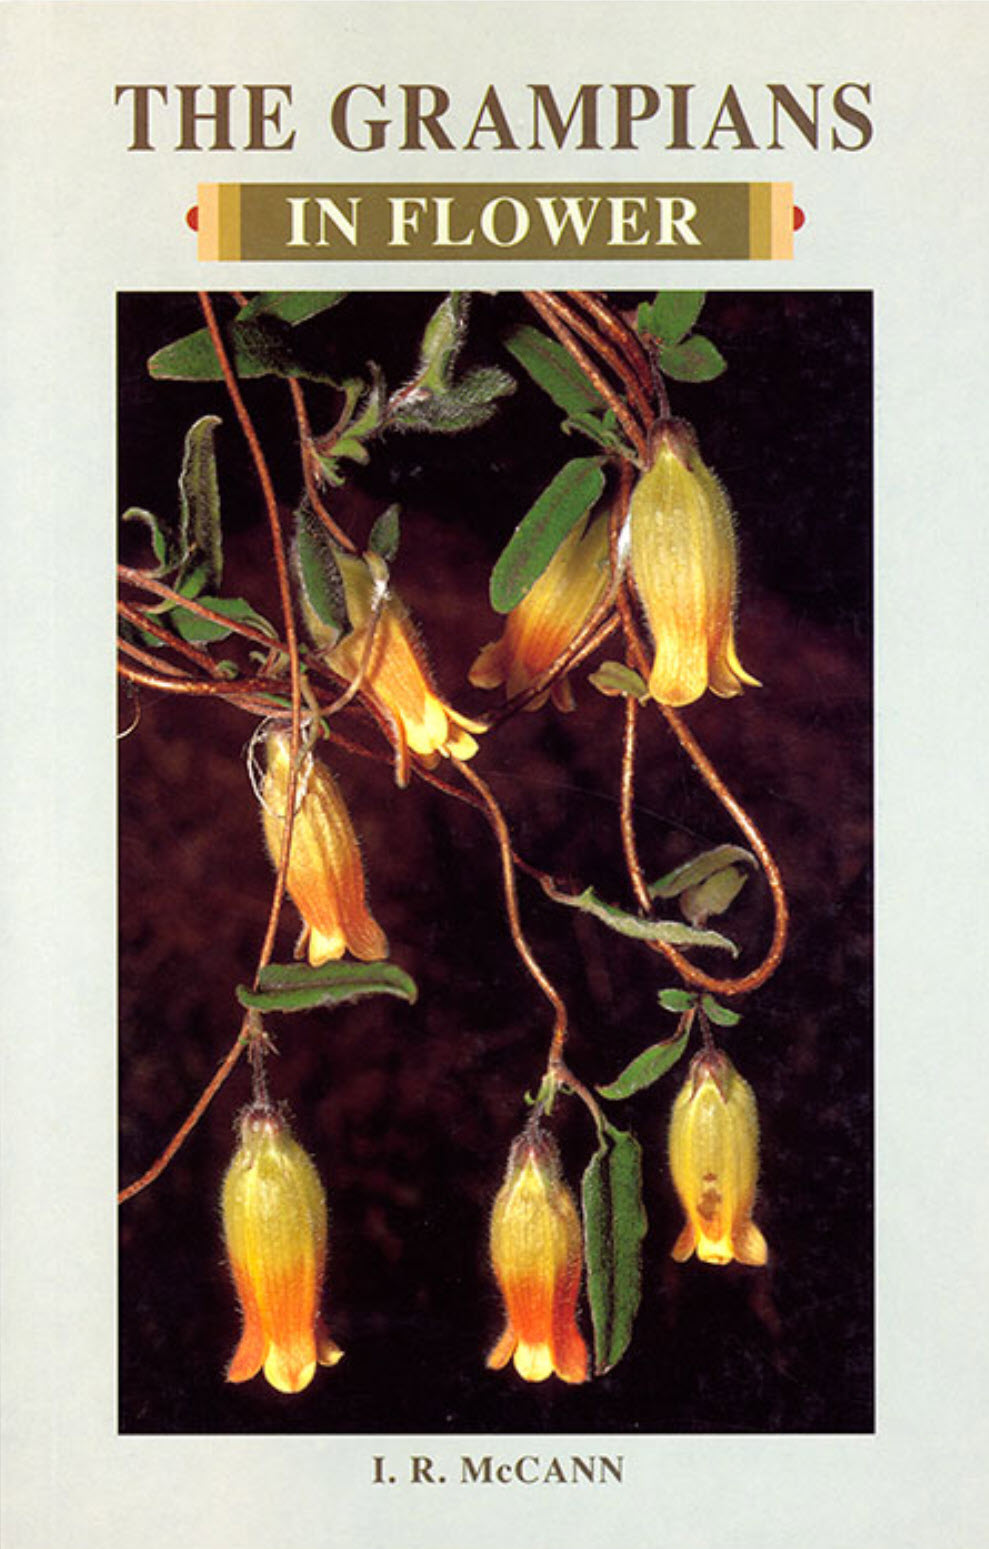 The Grampians in Flower Book Cover